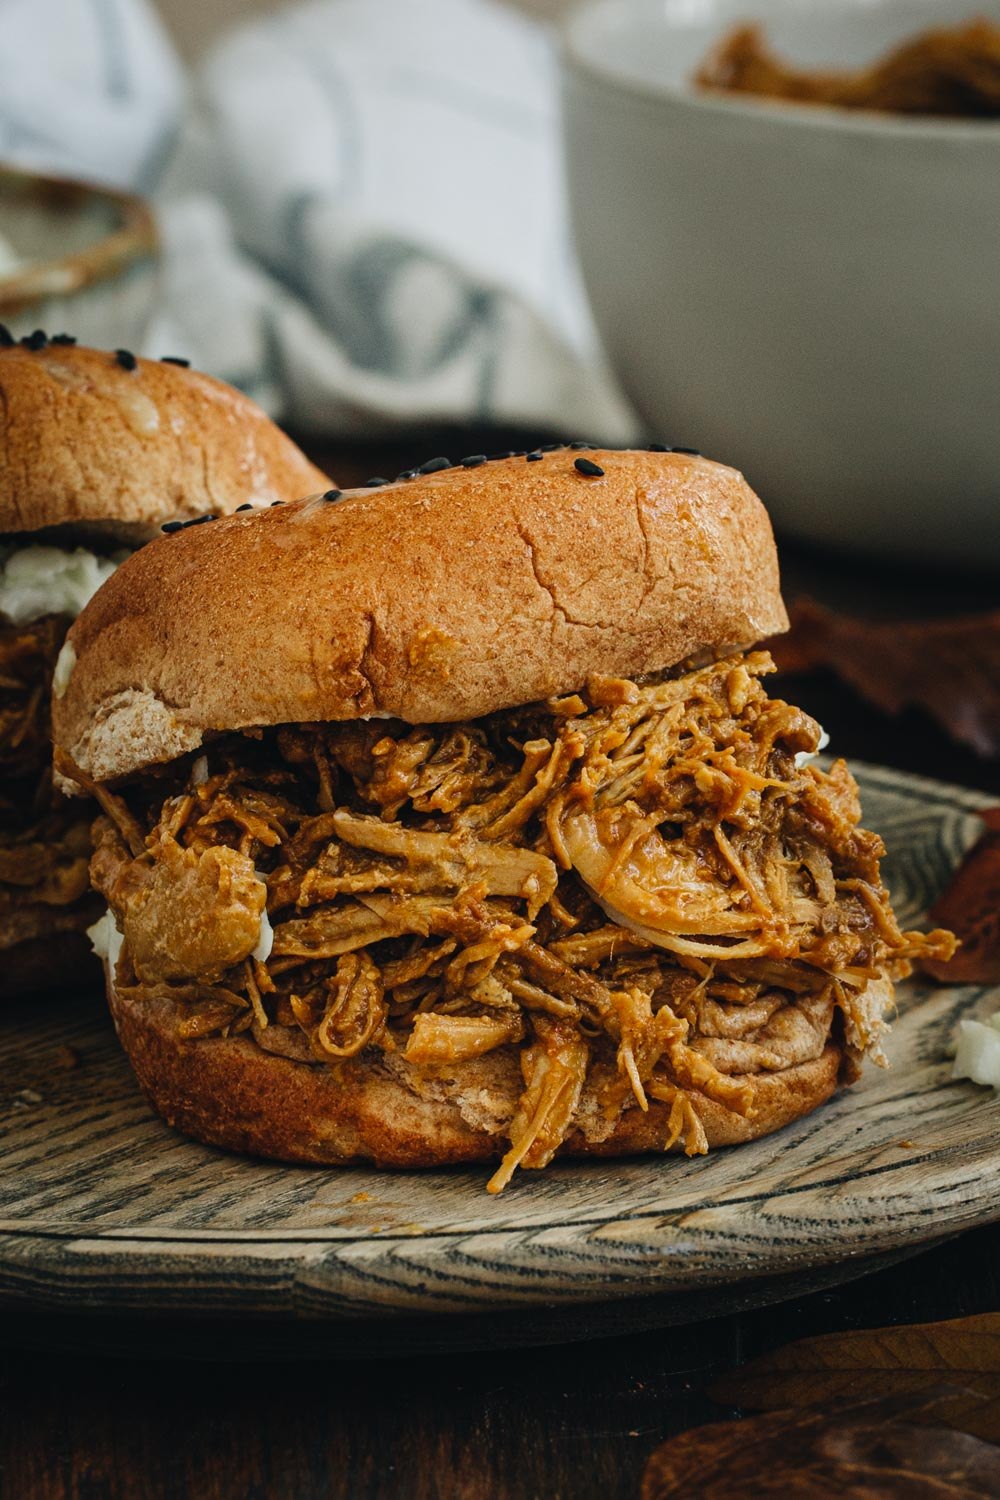 Close up of bbq chicken slider sitting on a wooden plate.